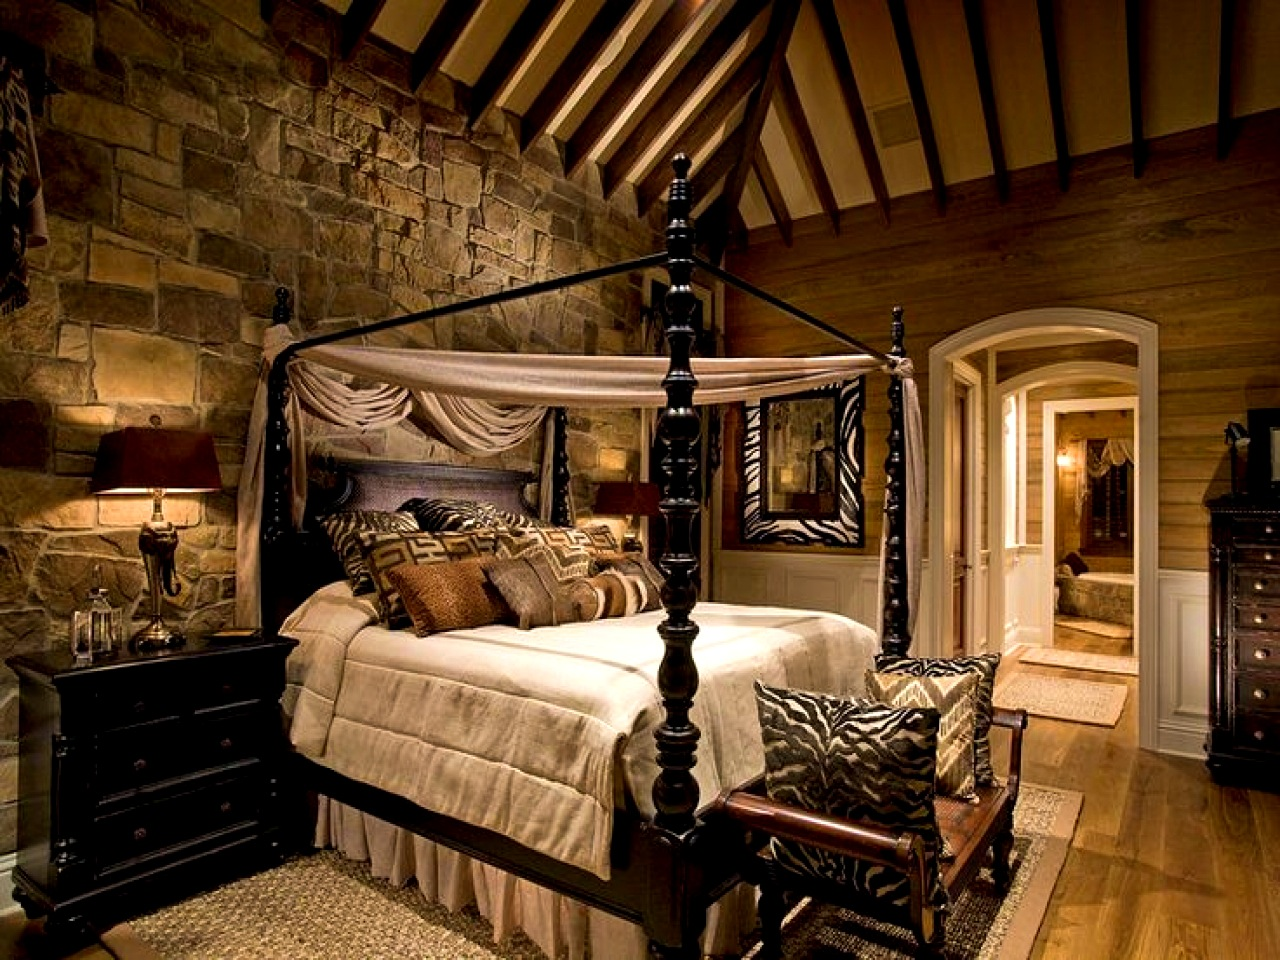 Rustic bedroom decorating ideas a guide to inspire and for Home decorating company bedding